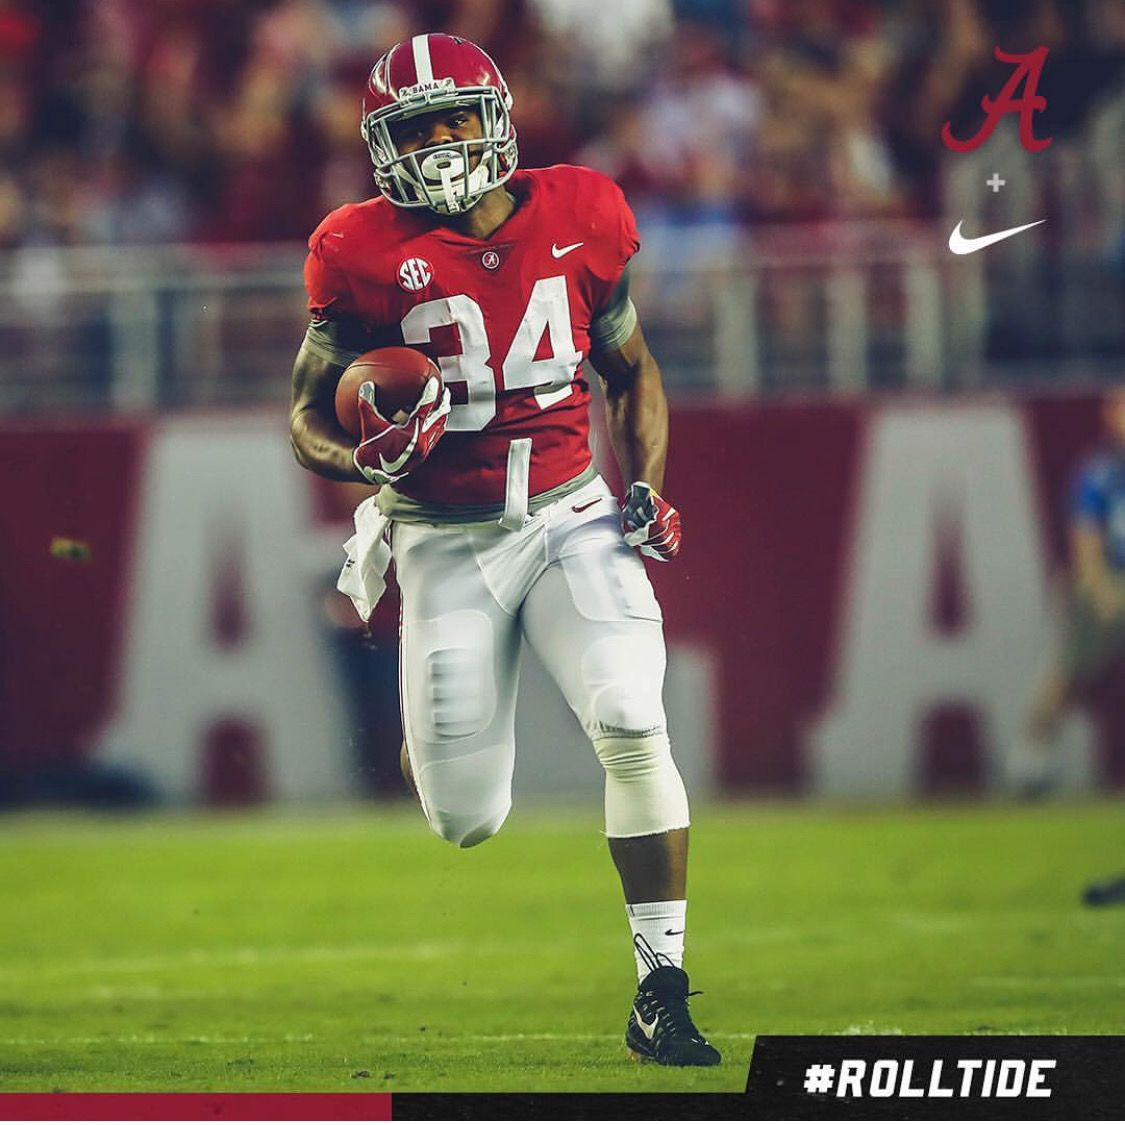 Damien Harris Alabama 41 Arkansas 9 Graphic Via Alabamafbl On Instagram Alabama Rolltid Alabama Crimson Tide Football Crimson Tide Football Bama Football